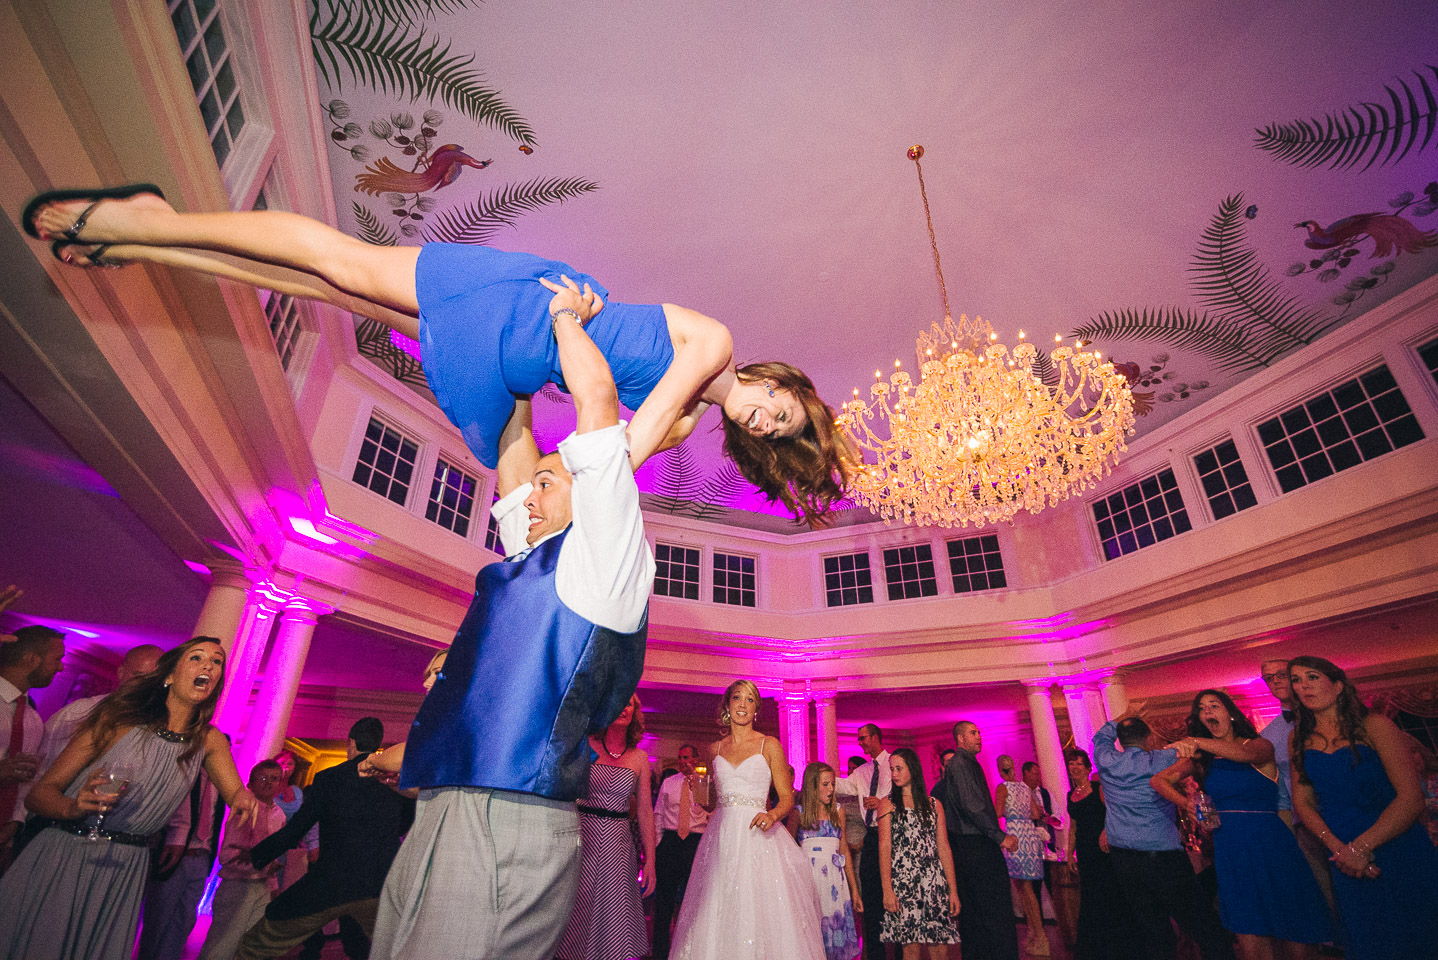 NH Wedding Photographer: dancing bridesmaid gets lifted